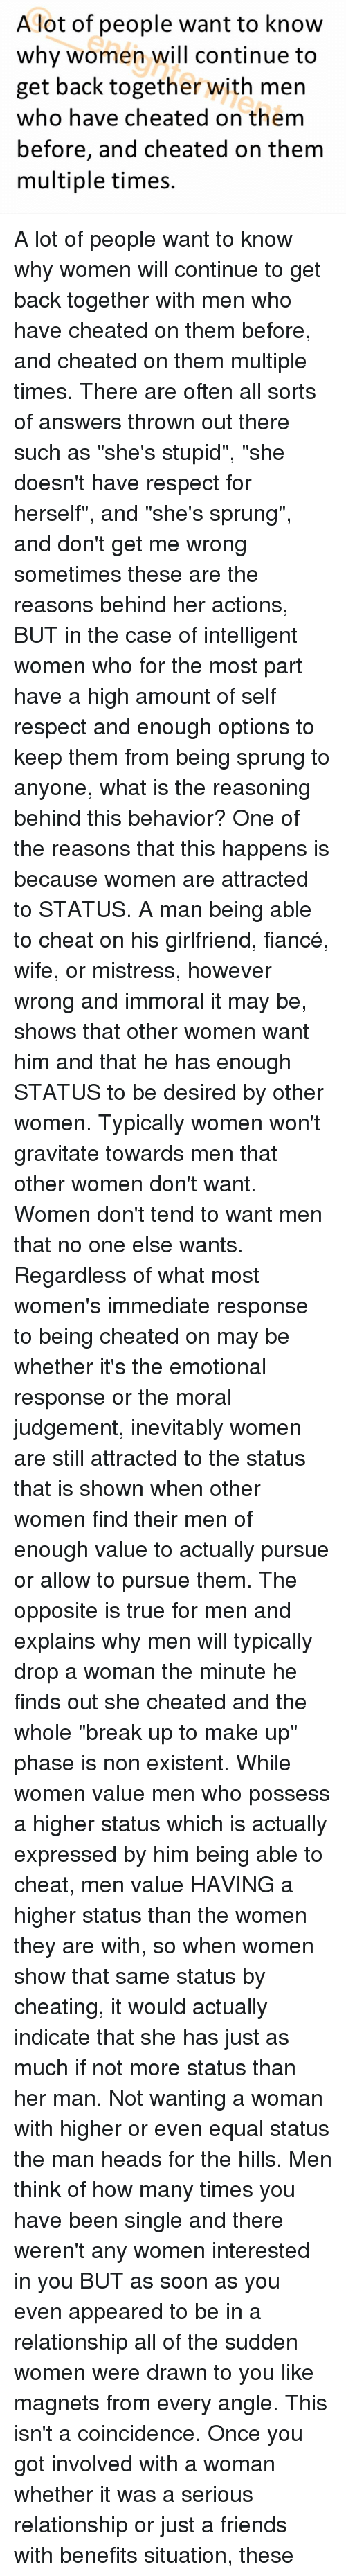 """indices: A lot of people want to know  why women will continue to  get back together with men  who have cheated on them  before, and cheated on them  multiple times. A lot of people want to know why women will continue to get back together with men who have cheated on them before, and cheated on them multiple times. There are often all sorts of answers thrown out there such as """"she's stupid"""", """"she doesn't have respect for herself"""", and """"she's sprung"""", and don't get me wrong sometimes these are the reasons behind her actions, BUT in the case of intelligent women who for the most part have a high amount of self respect and enough options to keep them from being sprung to anyone, what is the reasoning behind this behavior? One of the reasons that this happens is because women are attracted to STATUS. A man being able to cheat on his girlfriend, fiancé, wife, or mistress, however wrong and immoral it may be, shows that other women want him and that he has enough STATUS to be desired by other women. Typically women won't gravitate towards men that other women don't want. Women don't tend to want men that no one else wants. Regardless of what most women's immediate response to being cheated on may be whether it's the emotional response or the moral judgement, inevitably women are still attracted to the status that is shown when other women find their men of enough value to actually pursue or allow to pursue them. The opposite is true for men and explains why men will typically drop a woman the minute he finds out she cheated and the whole """"break up to make up"""" phase is non existent. While women value men who possess a higher status which is actually expressed by him being able to cheat, men value HAVING a higher status than the women they are with, so when women show that same status by cheating, it would actually indicate that she has just as much if not more status than her man. Not wanting a woman with higher or even equal status the man heads for the hills. Men think """